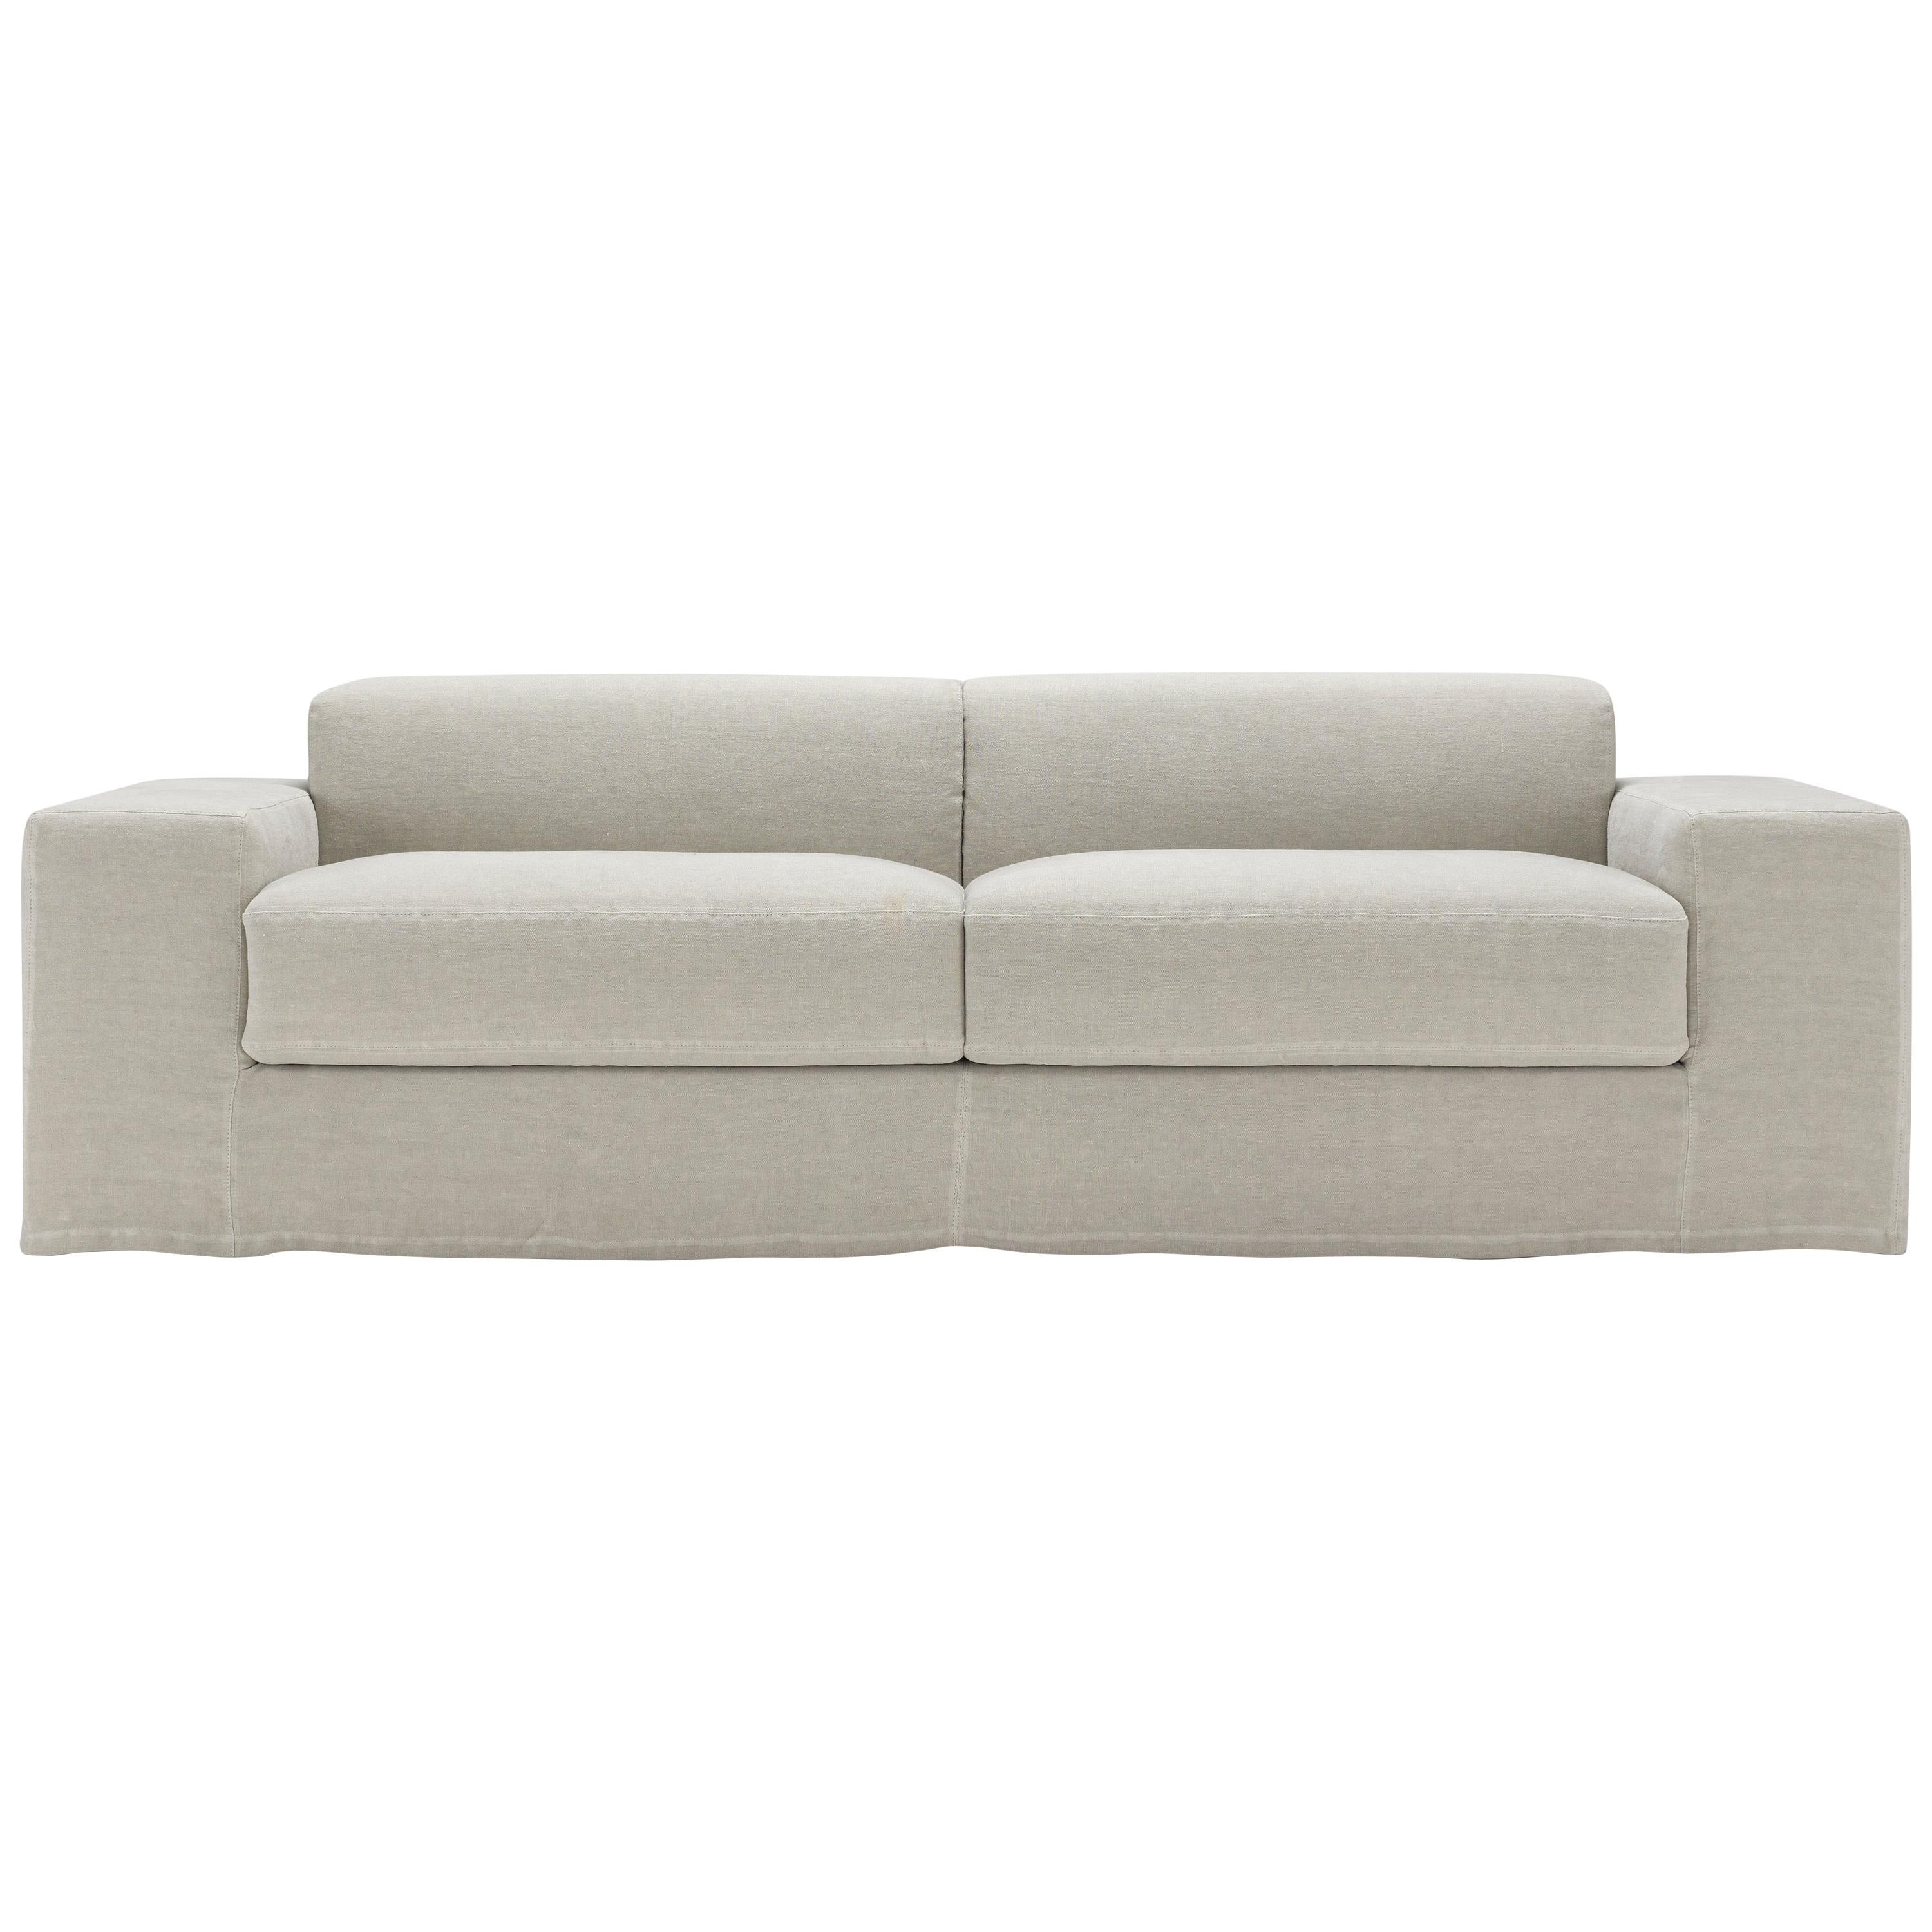 Amura Frank Sofa Bed in White Linen by Amuralab